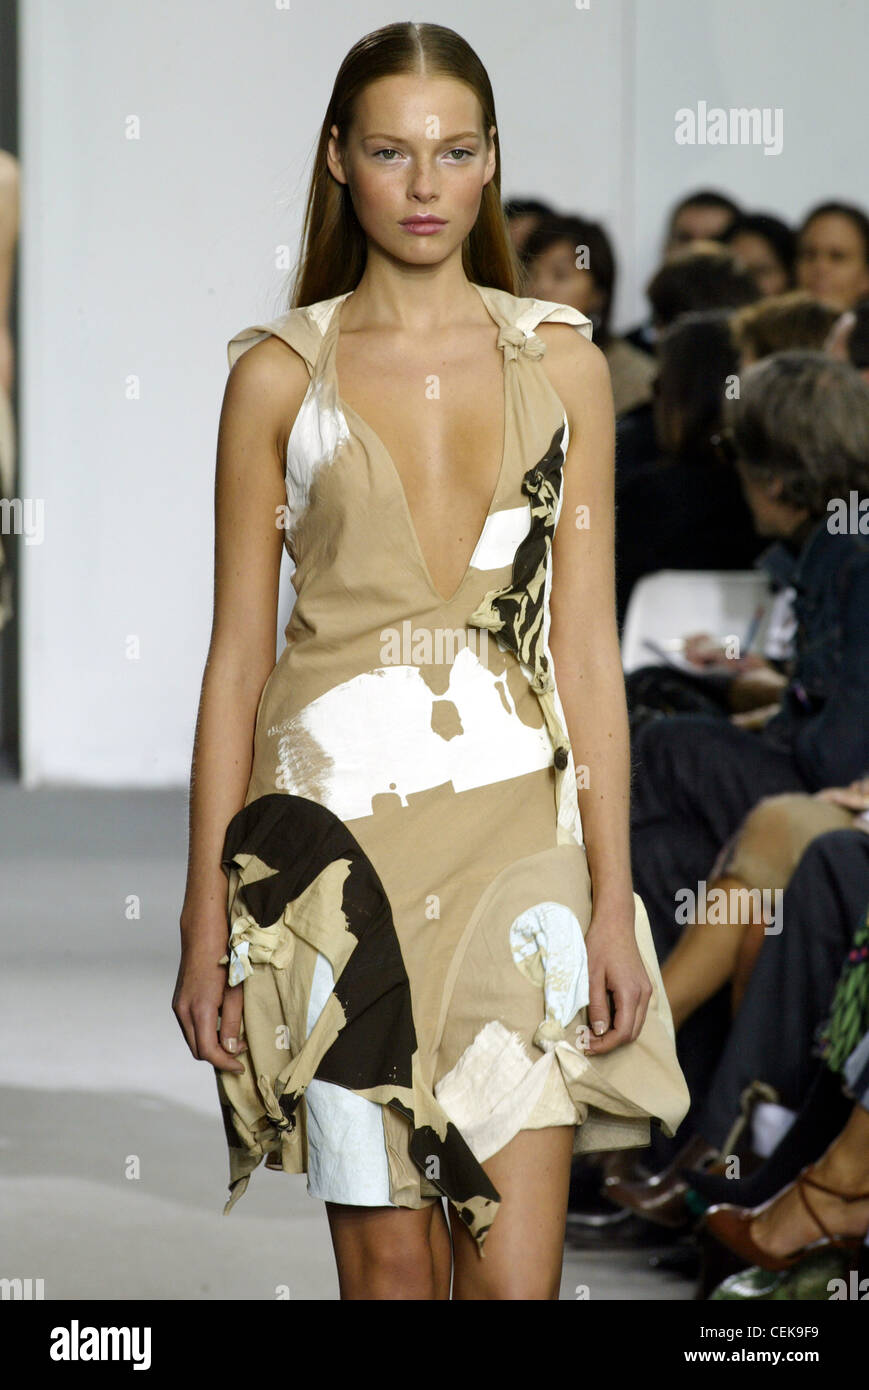 Helmut Lang Paris Ready to Wear Spring Summer Model long brunette hair tucked behind ears wearing biege white and - Stock Image